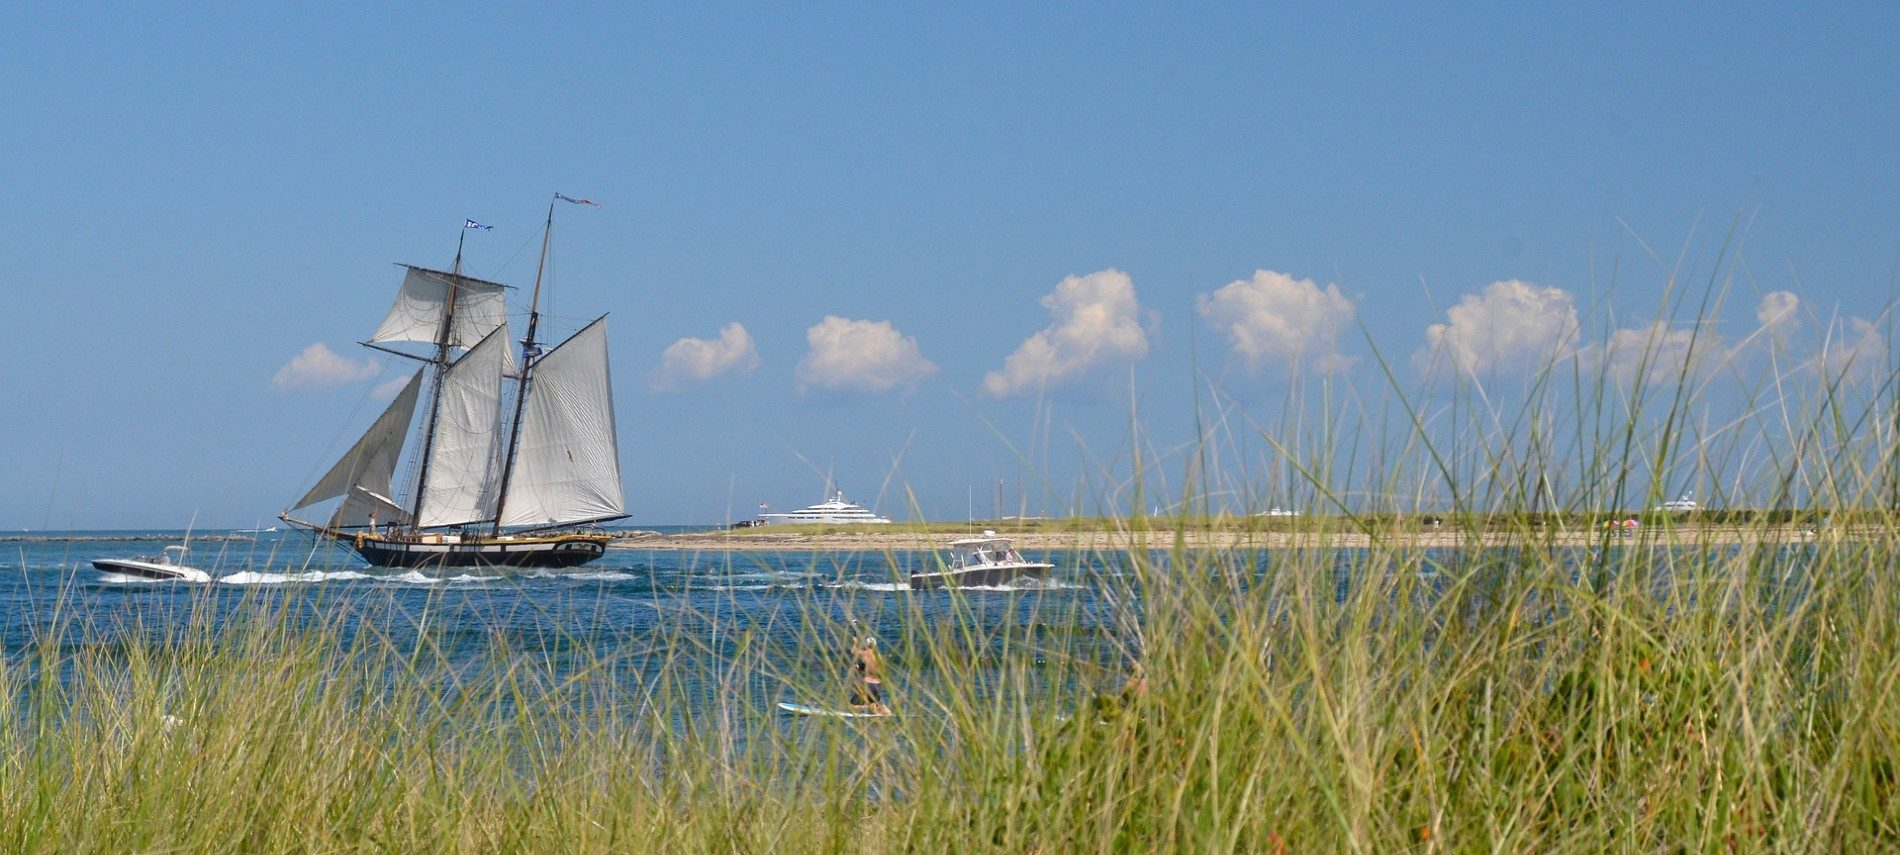 Body of water with beach in the background and large sailing ship, speedboat and paddleboarder in the water